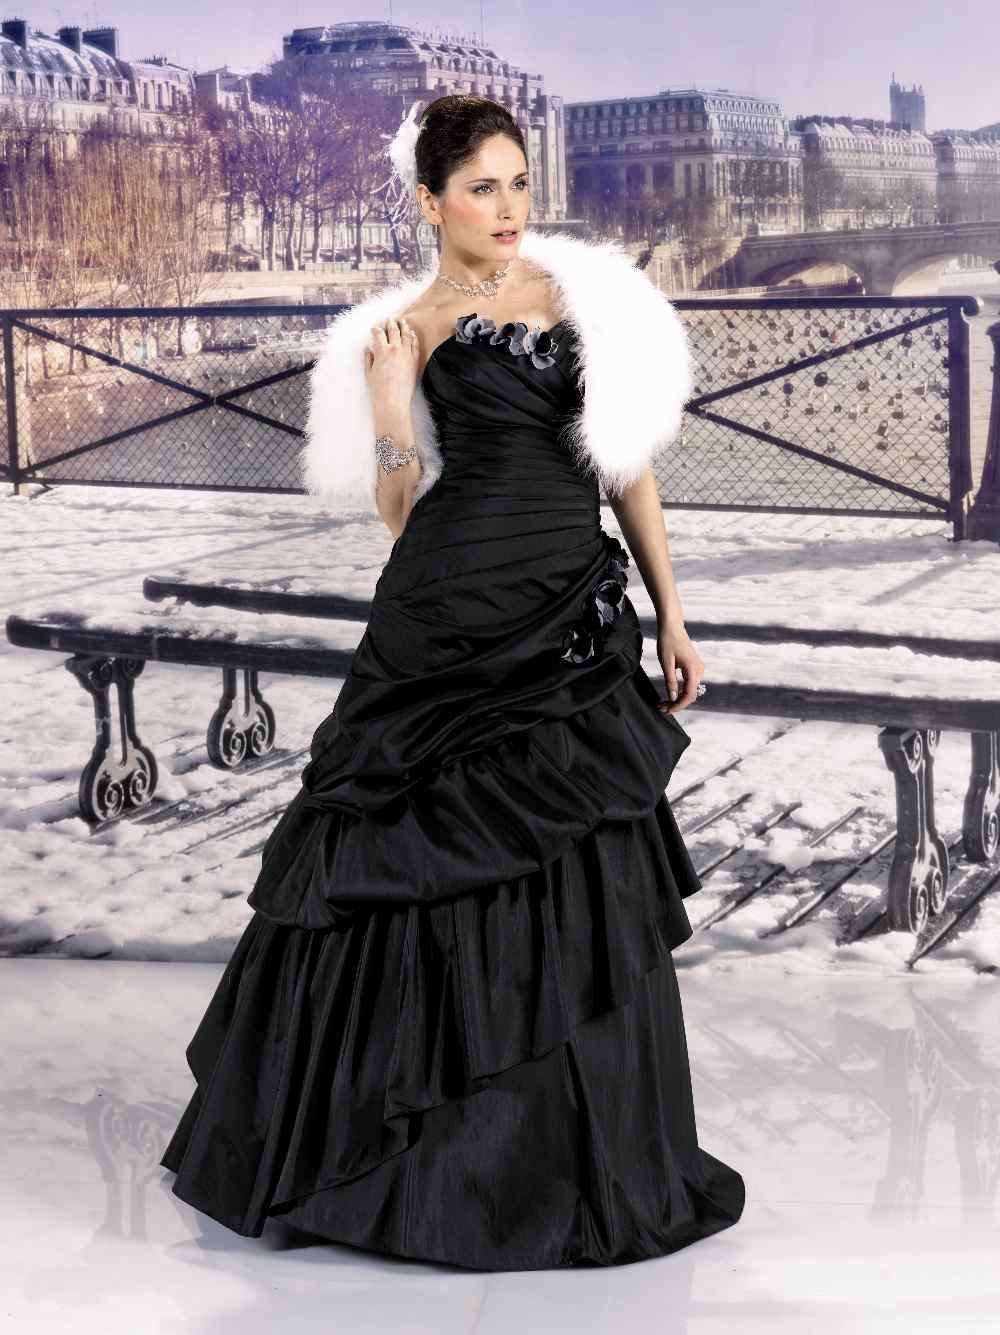 New trend in western europe all black wedding dress no more new trend in western europe all black wedding dress no more ombrellifo Gallery